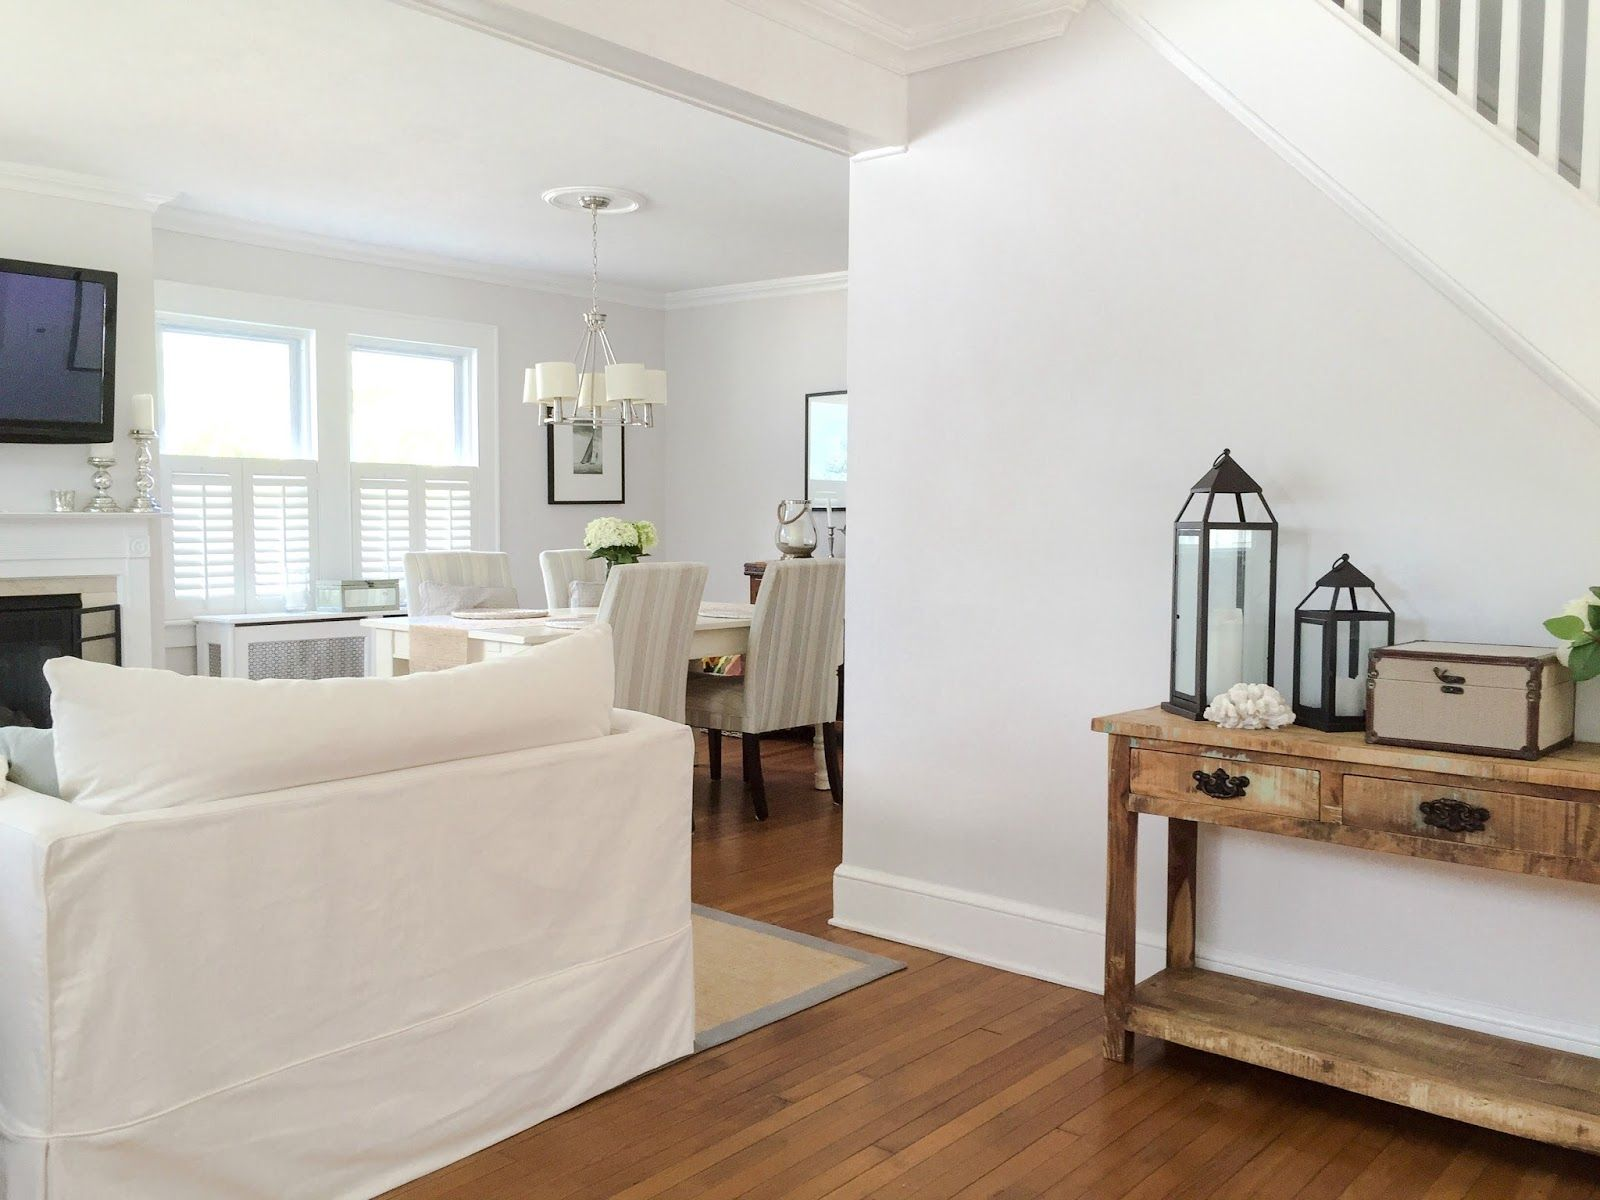 Image Result For Sherwin Williams Eider White Walls Eider White Living Room White White Walls